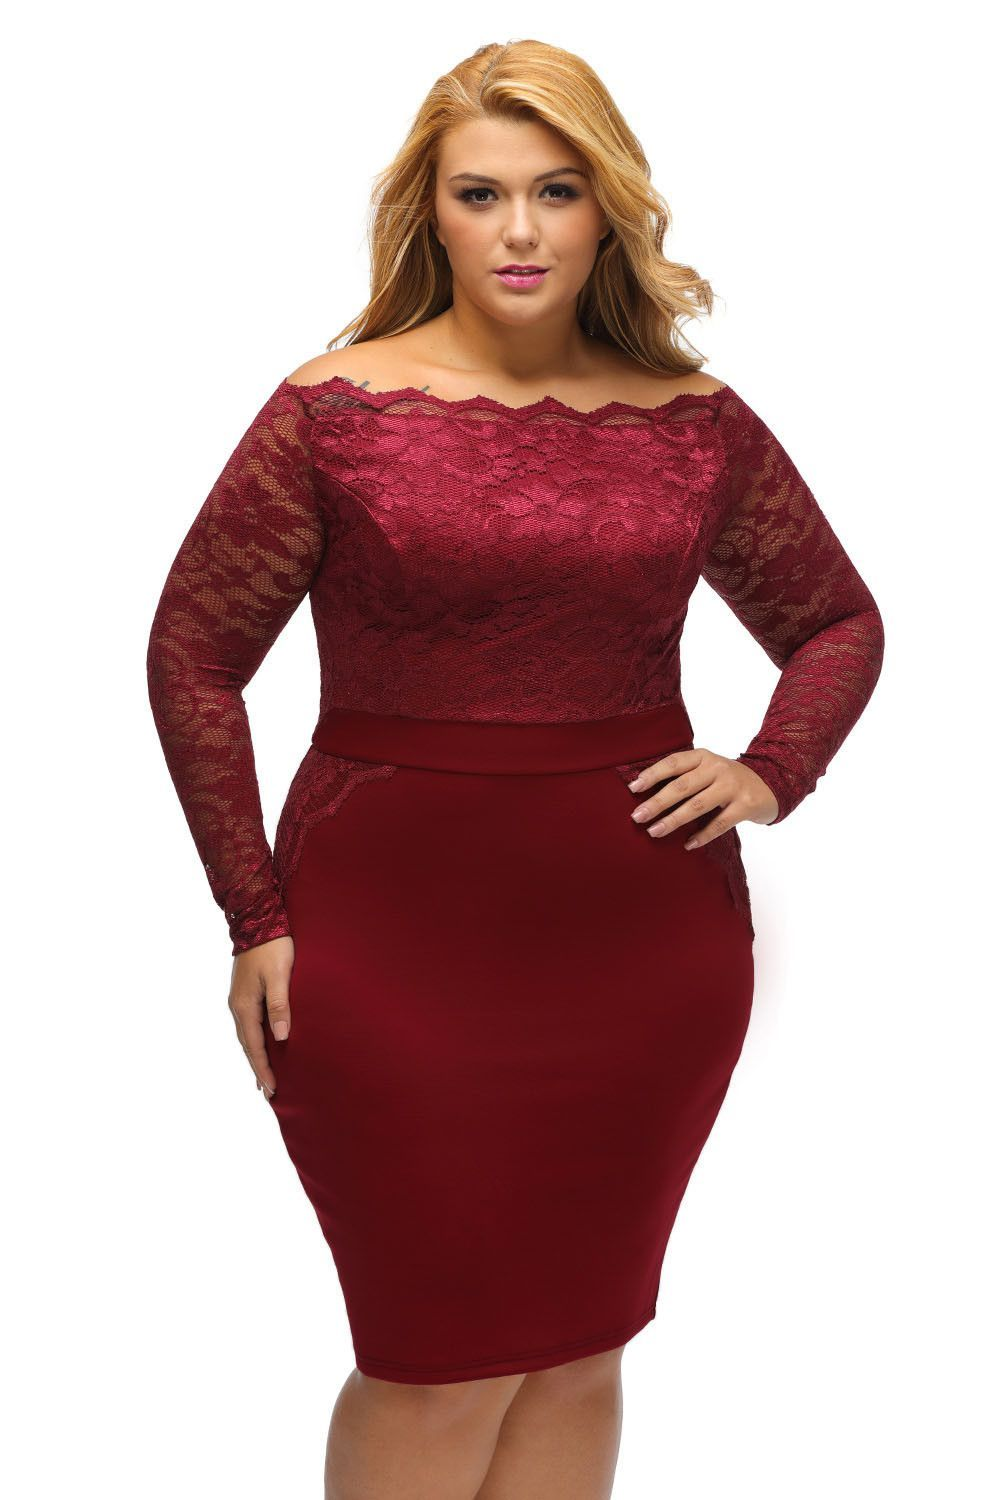 ae8845a080e91 Red Off Shoulder Long Sleeve Plus Size Lace Dress Women Fashion New In  Style at modeshe.com